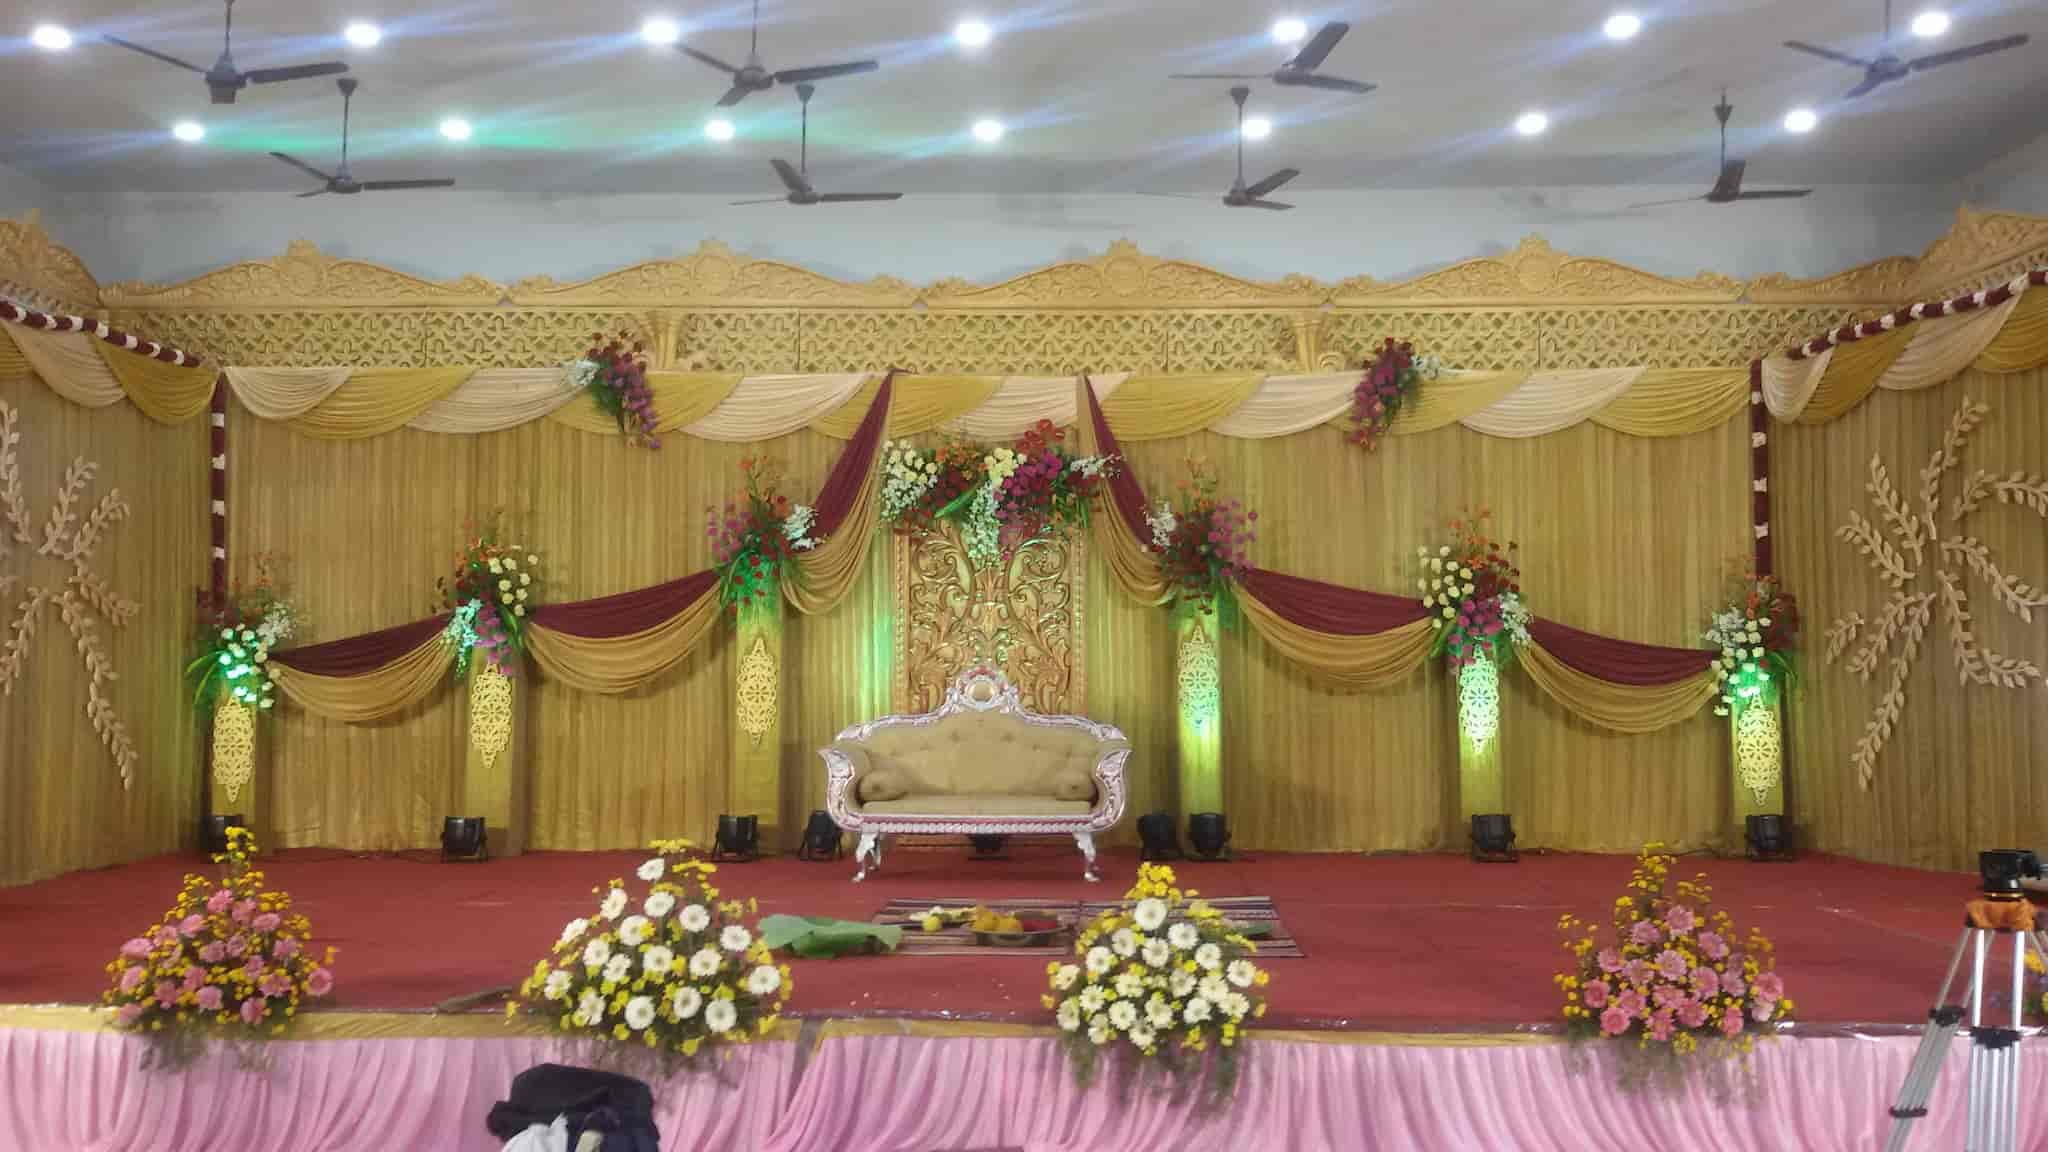 Vaanga vazhthalam decoration catering services photos arumbakkam stage decoration vaanga vazhthalam decoration catering services photos arumbakkam chennai kalyana junglespirit Choice Image